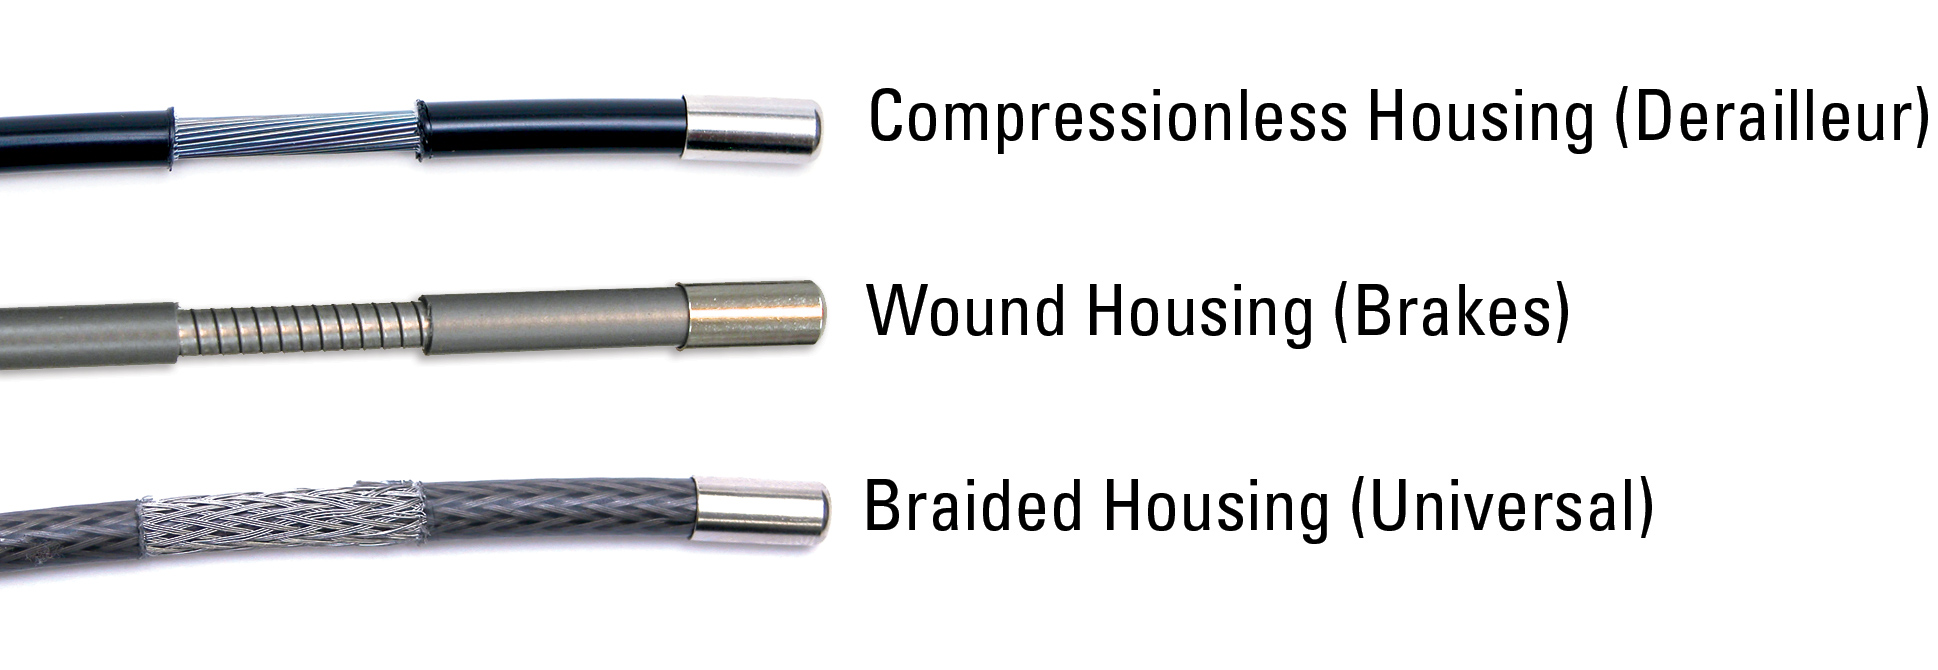 Cutting and Sizing Cable Housing